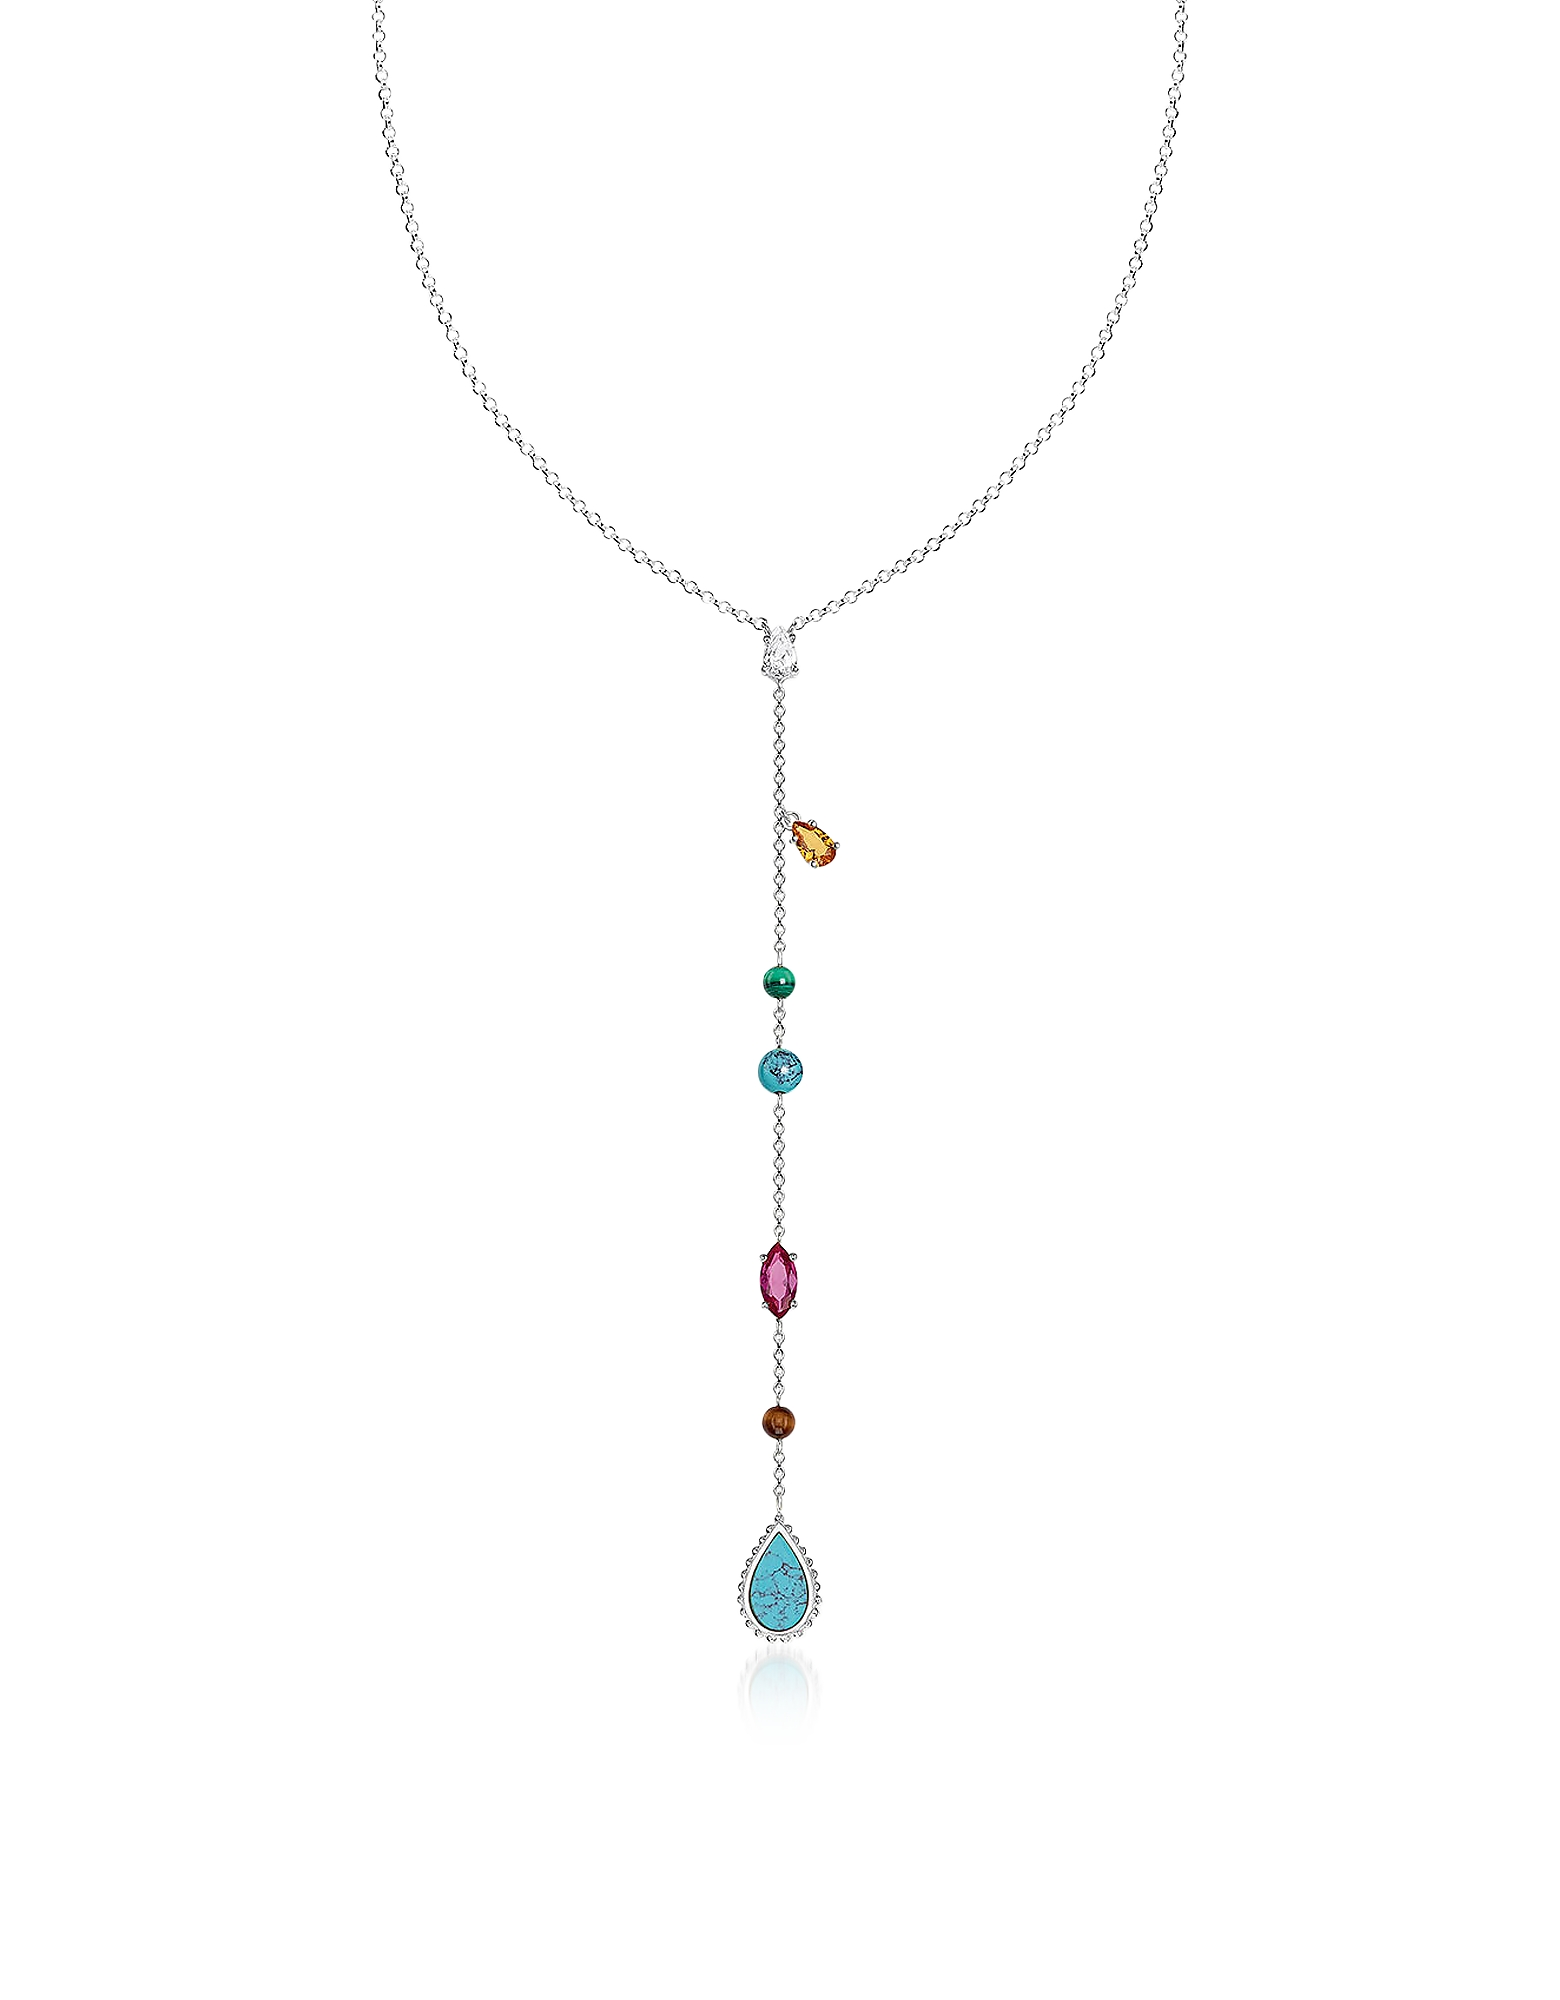 Thomas Sabo Necklaces, Sterling Silver Riviera Colours Long Necklace w/Ceramic Stones